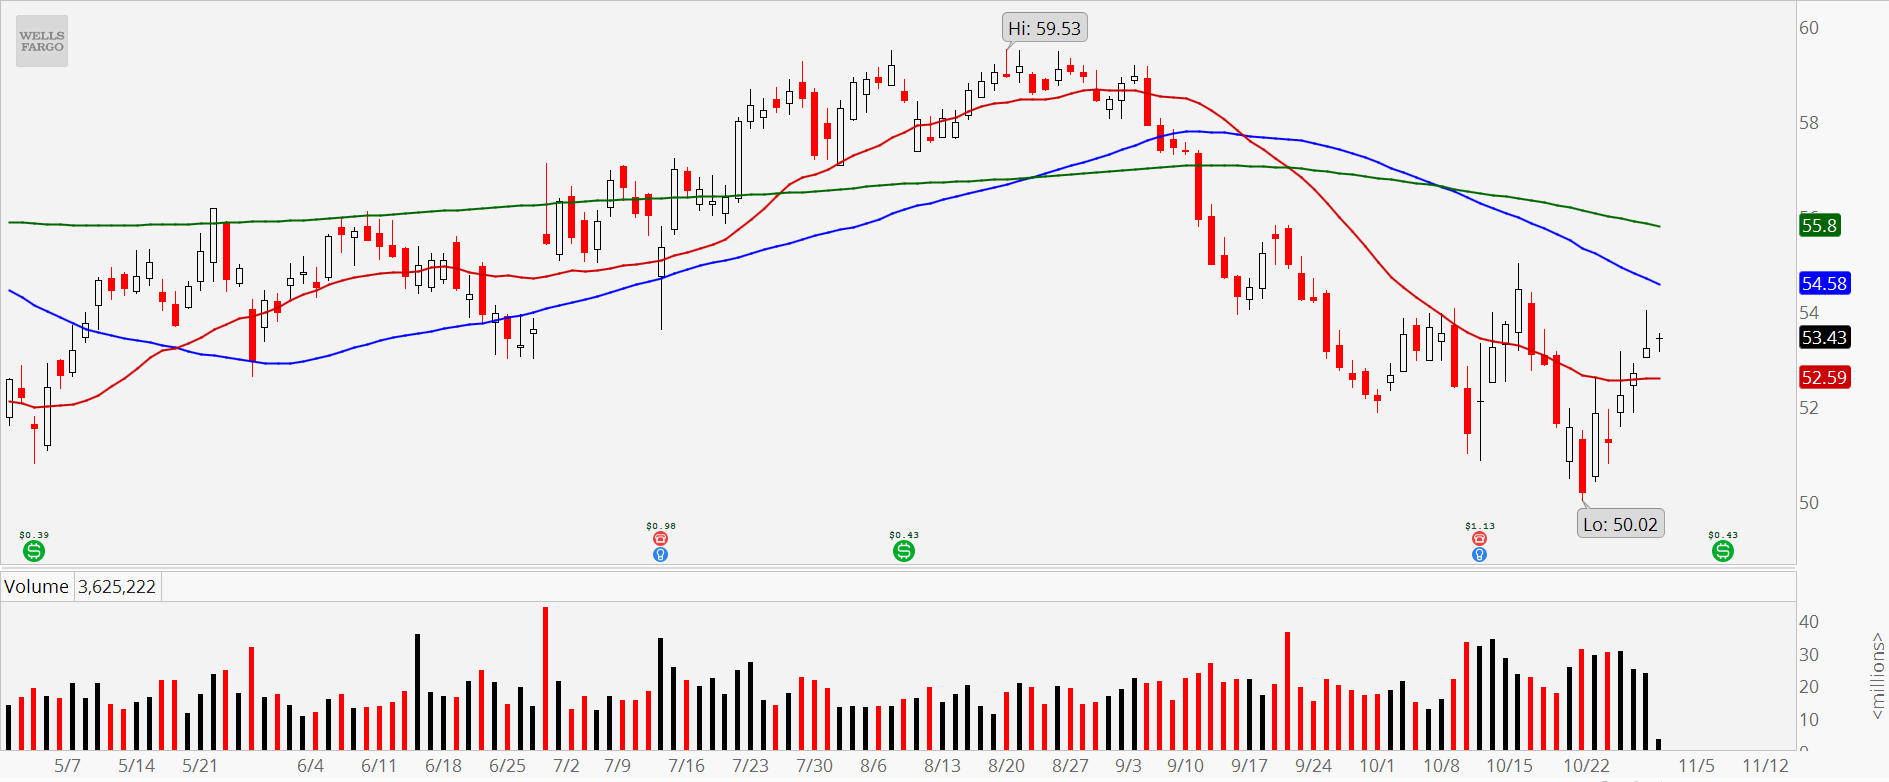 3 Bank Stocks to Sell: Wells Fargo (WFC)